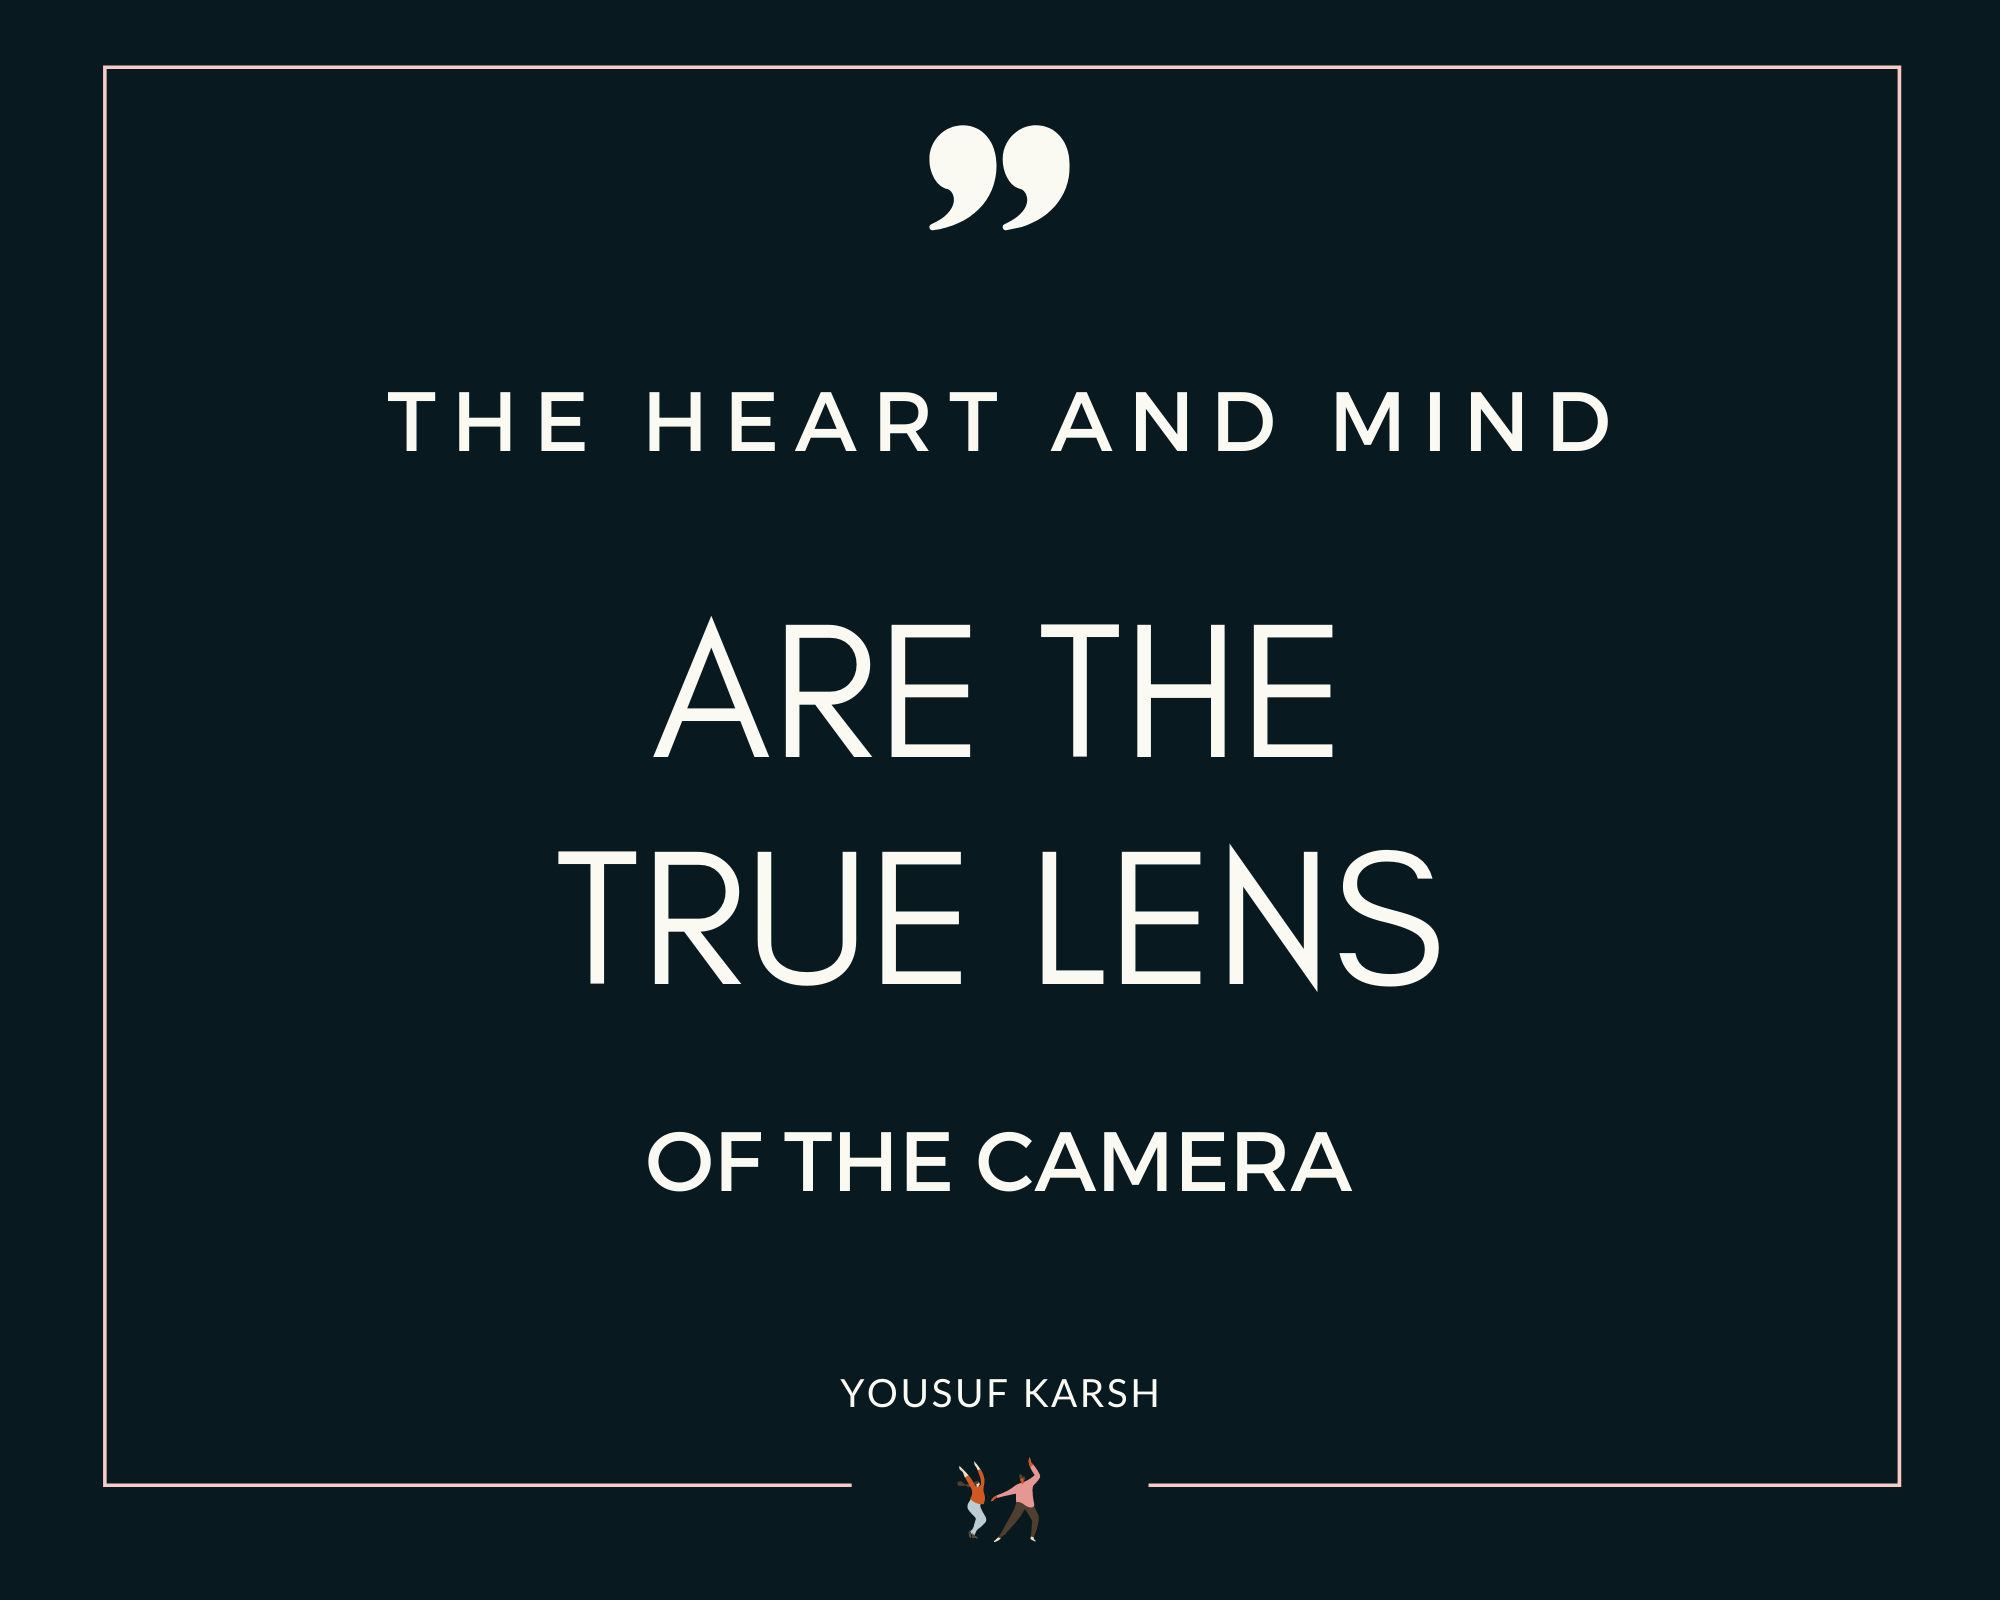 Infographic stating the heart and mind are the true lens of the camera